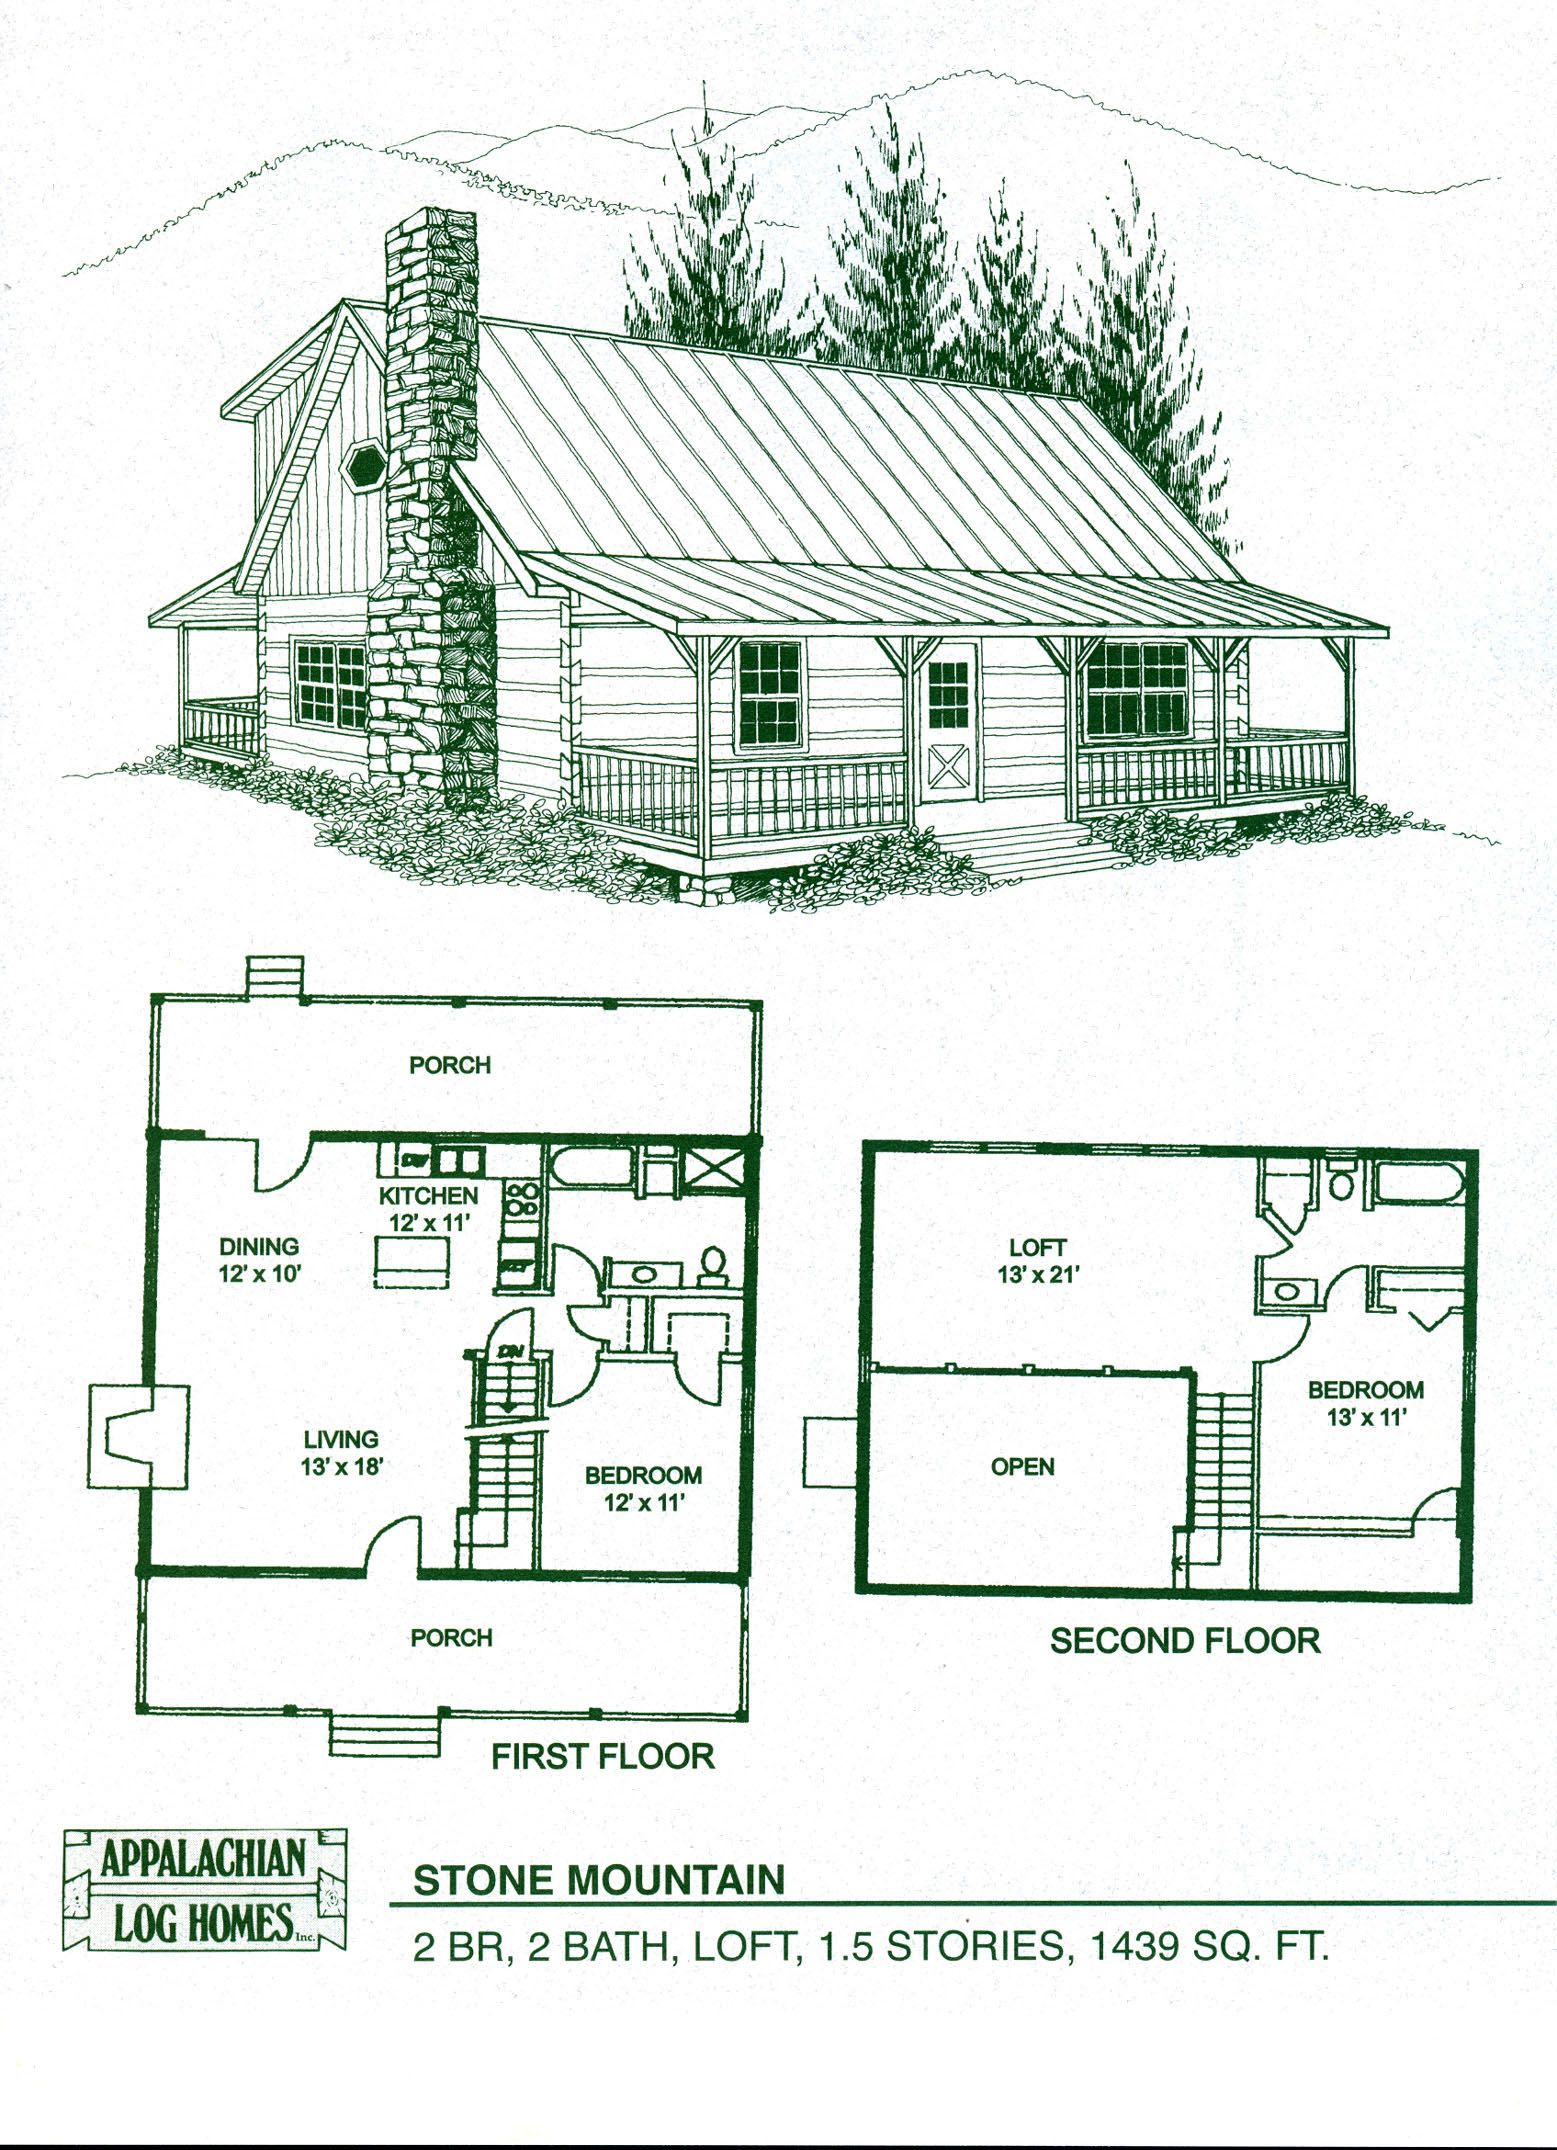 stone and log home plans. cabin home plans with loft  Log Home Floor Plans Cabin Kits Appalachian